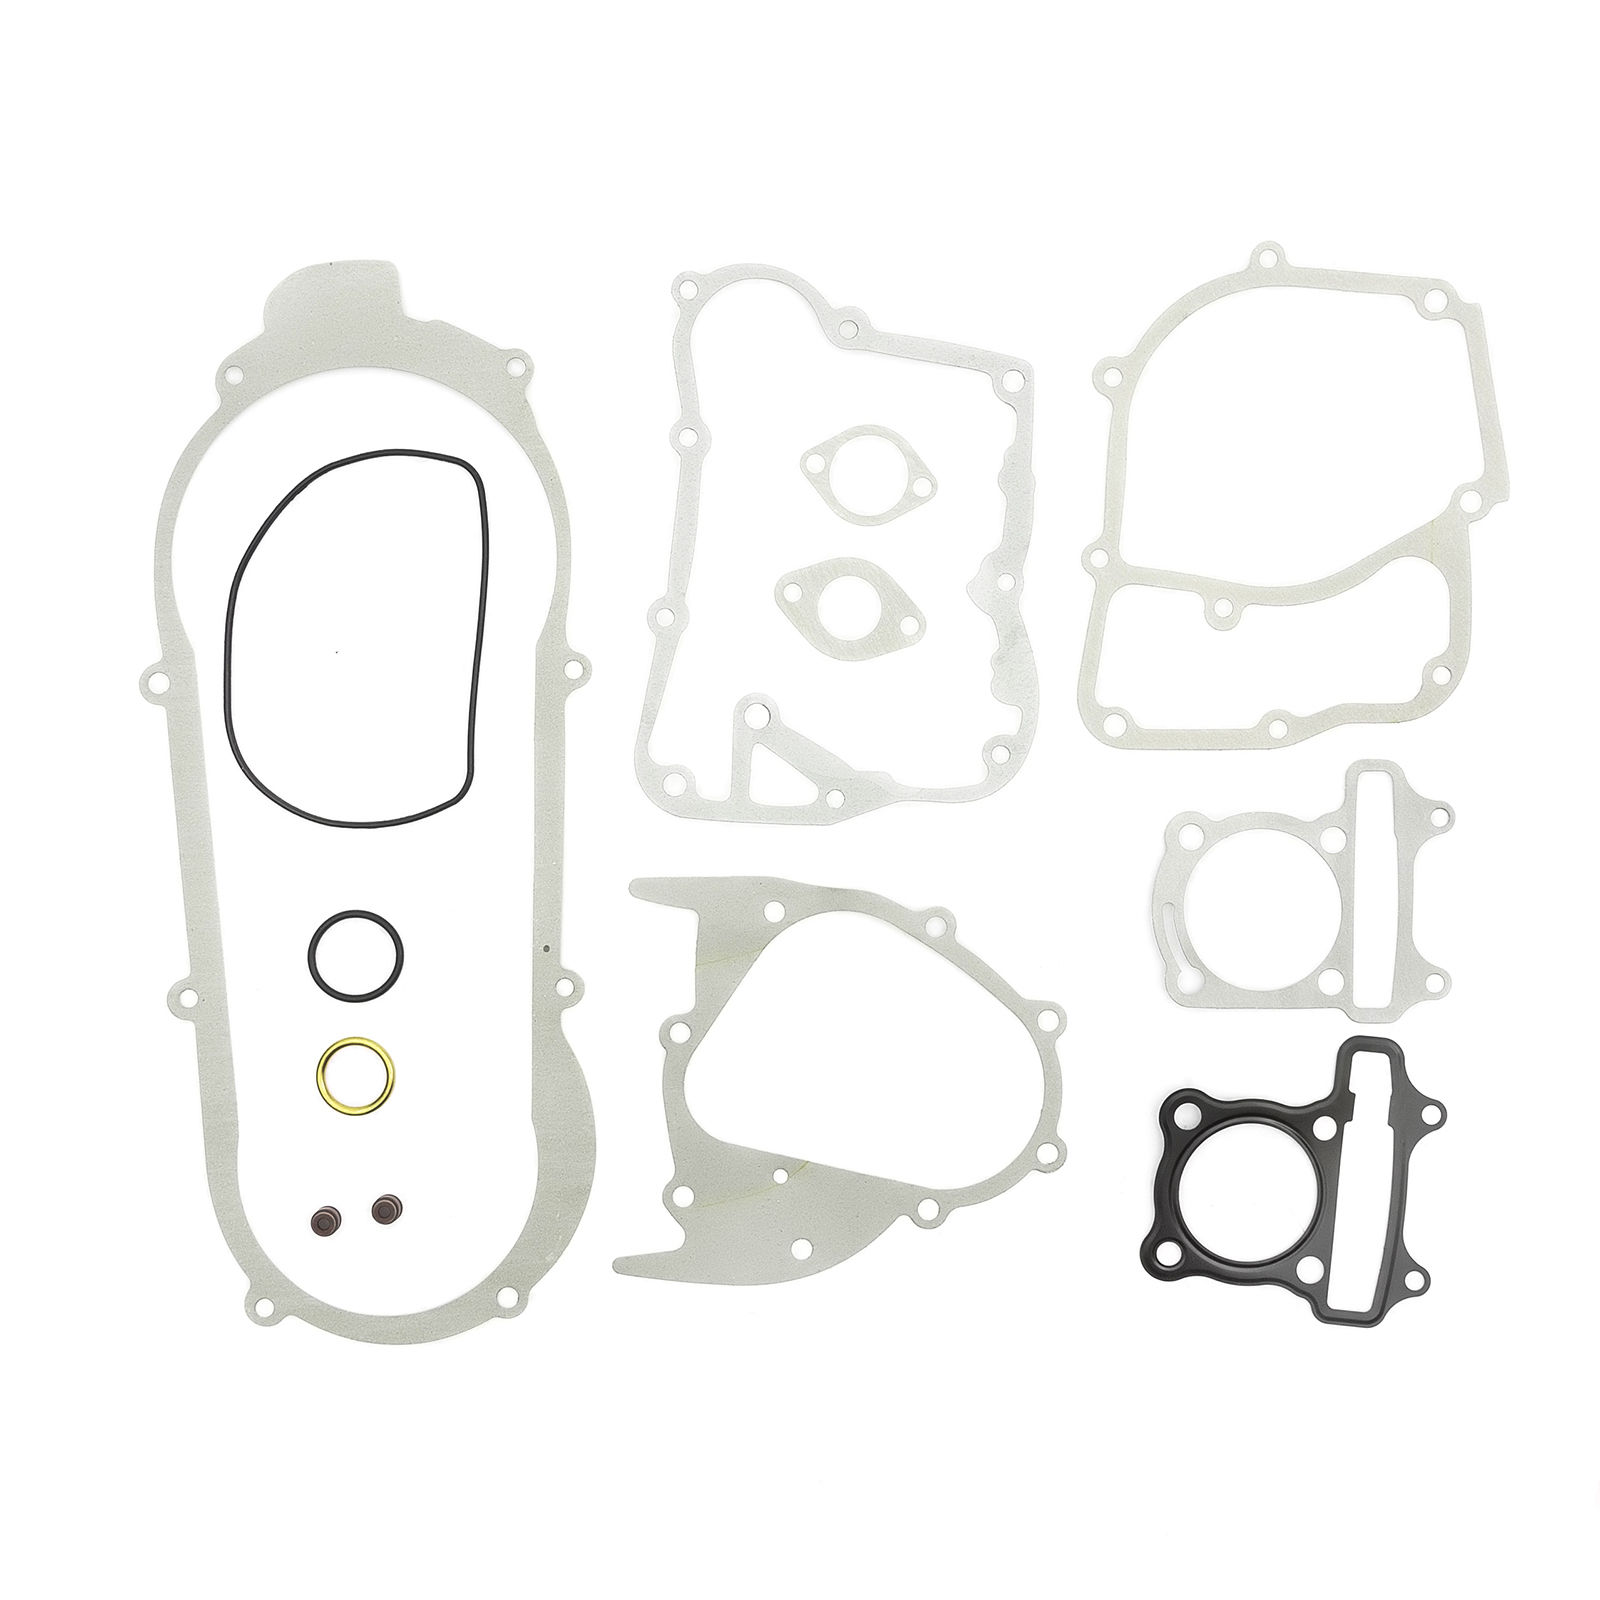 Gasket Set 410mm Gy6 152qmi 125cc Chinese Scooter Engine